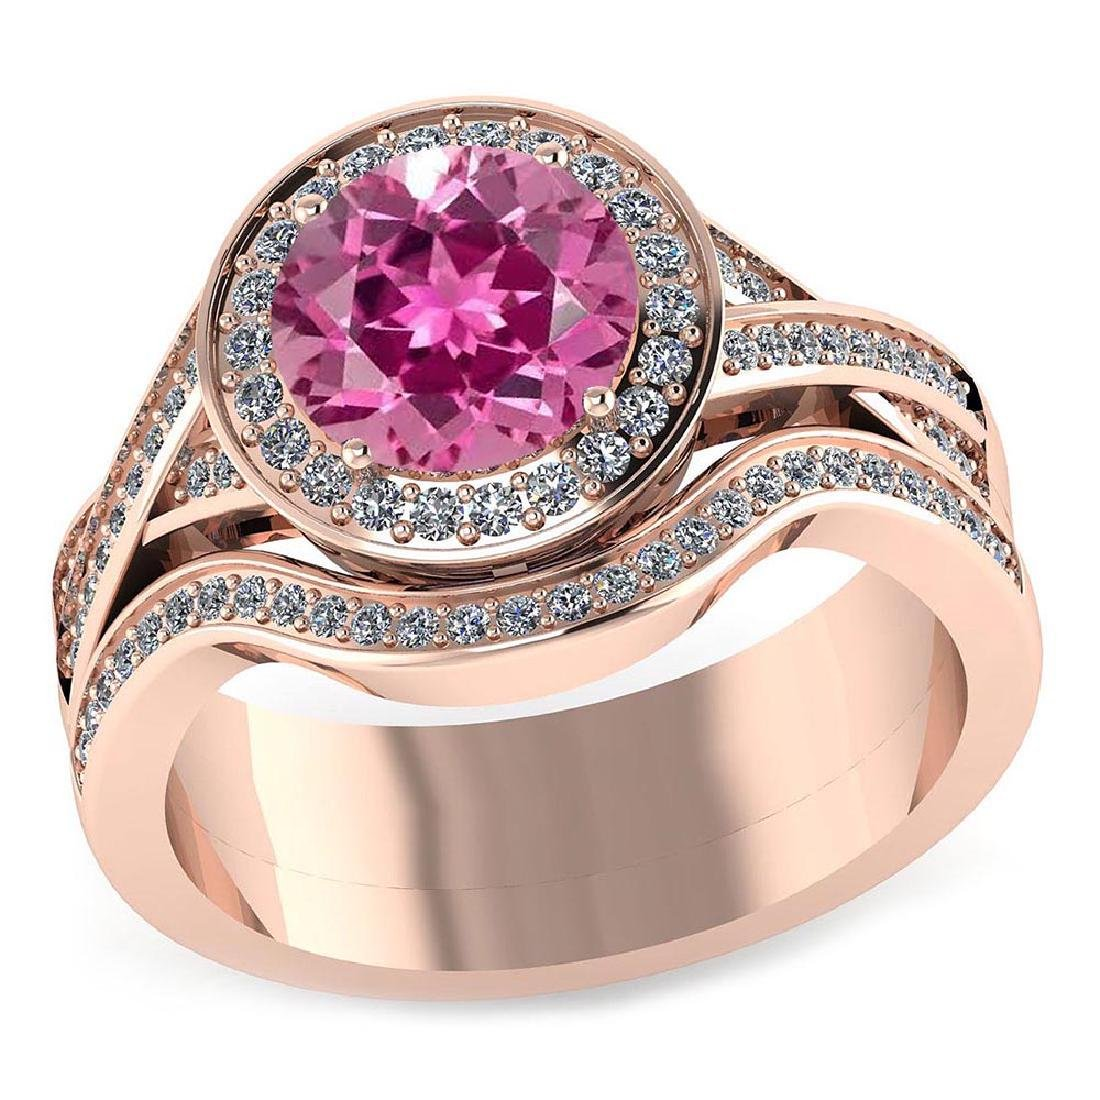 Certified 2.25 CTW Genuine Pink Tourmaline And Diamond